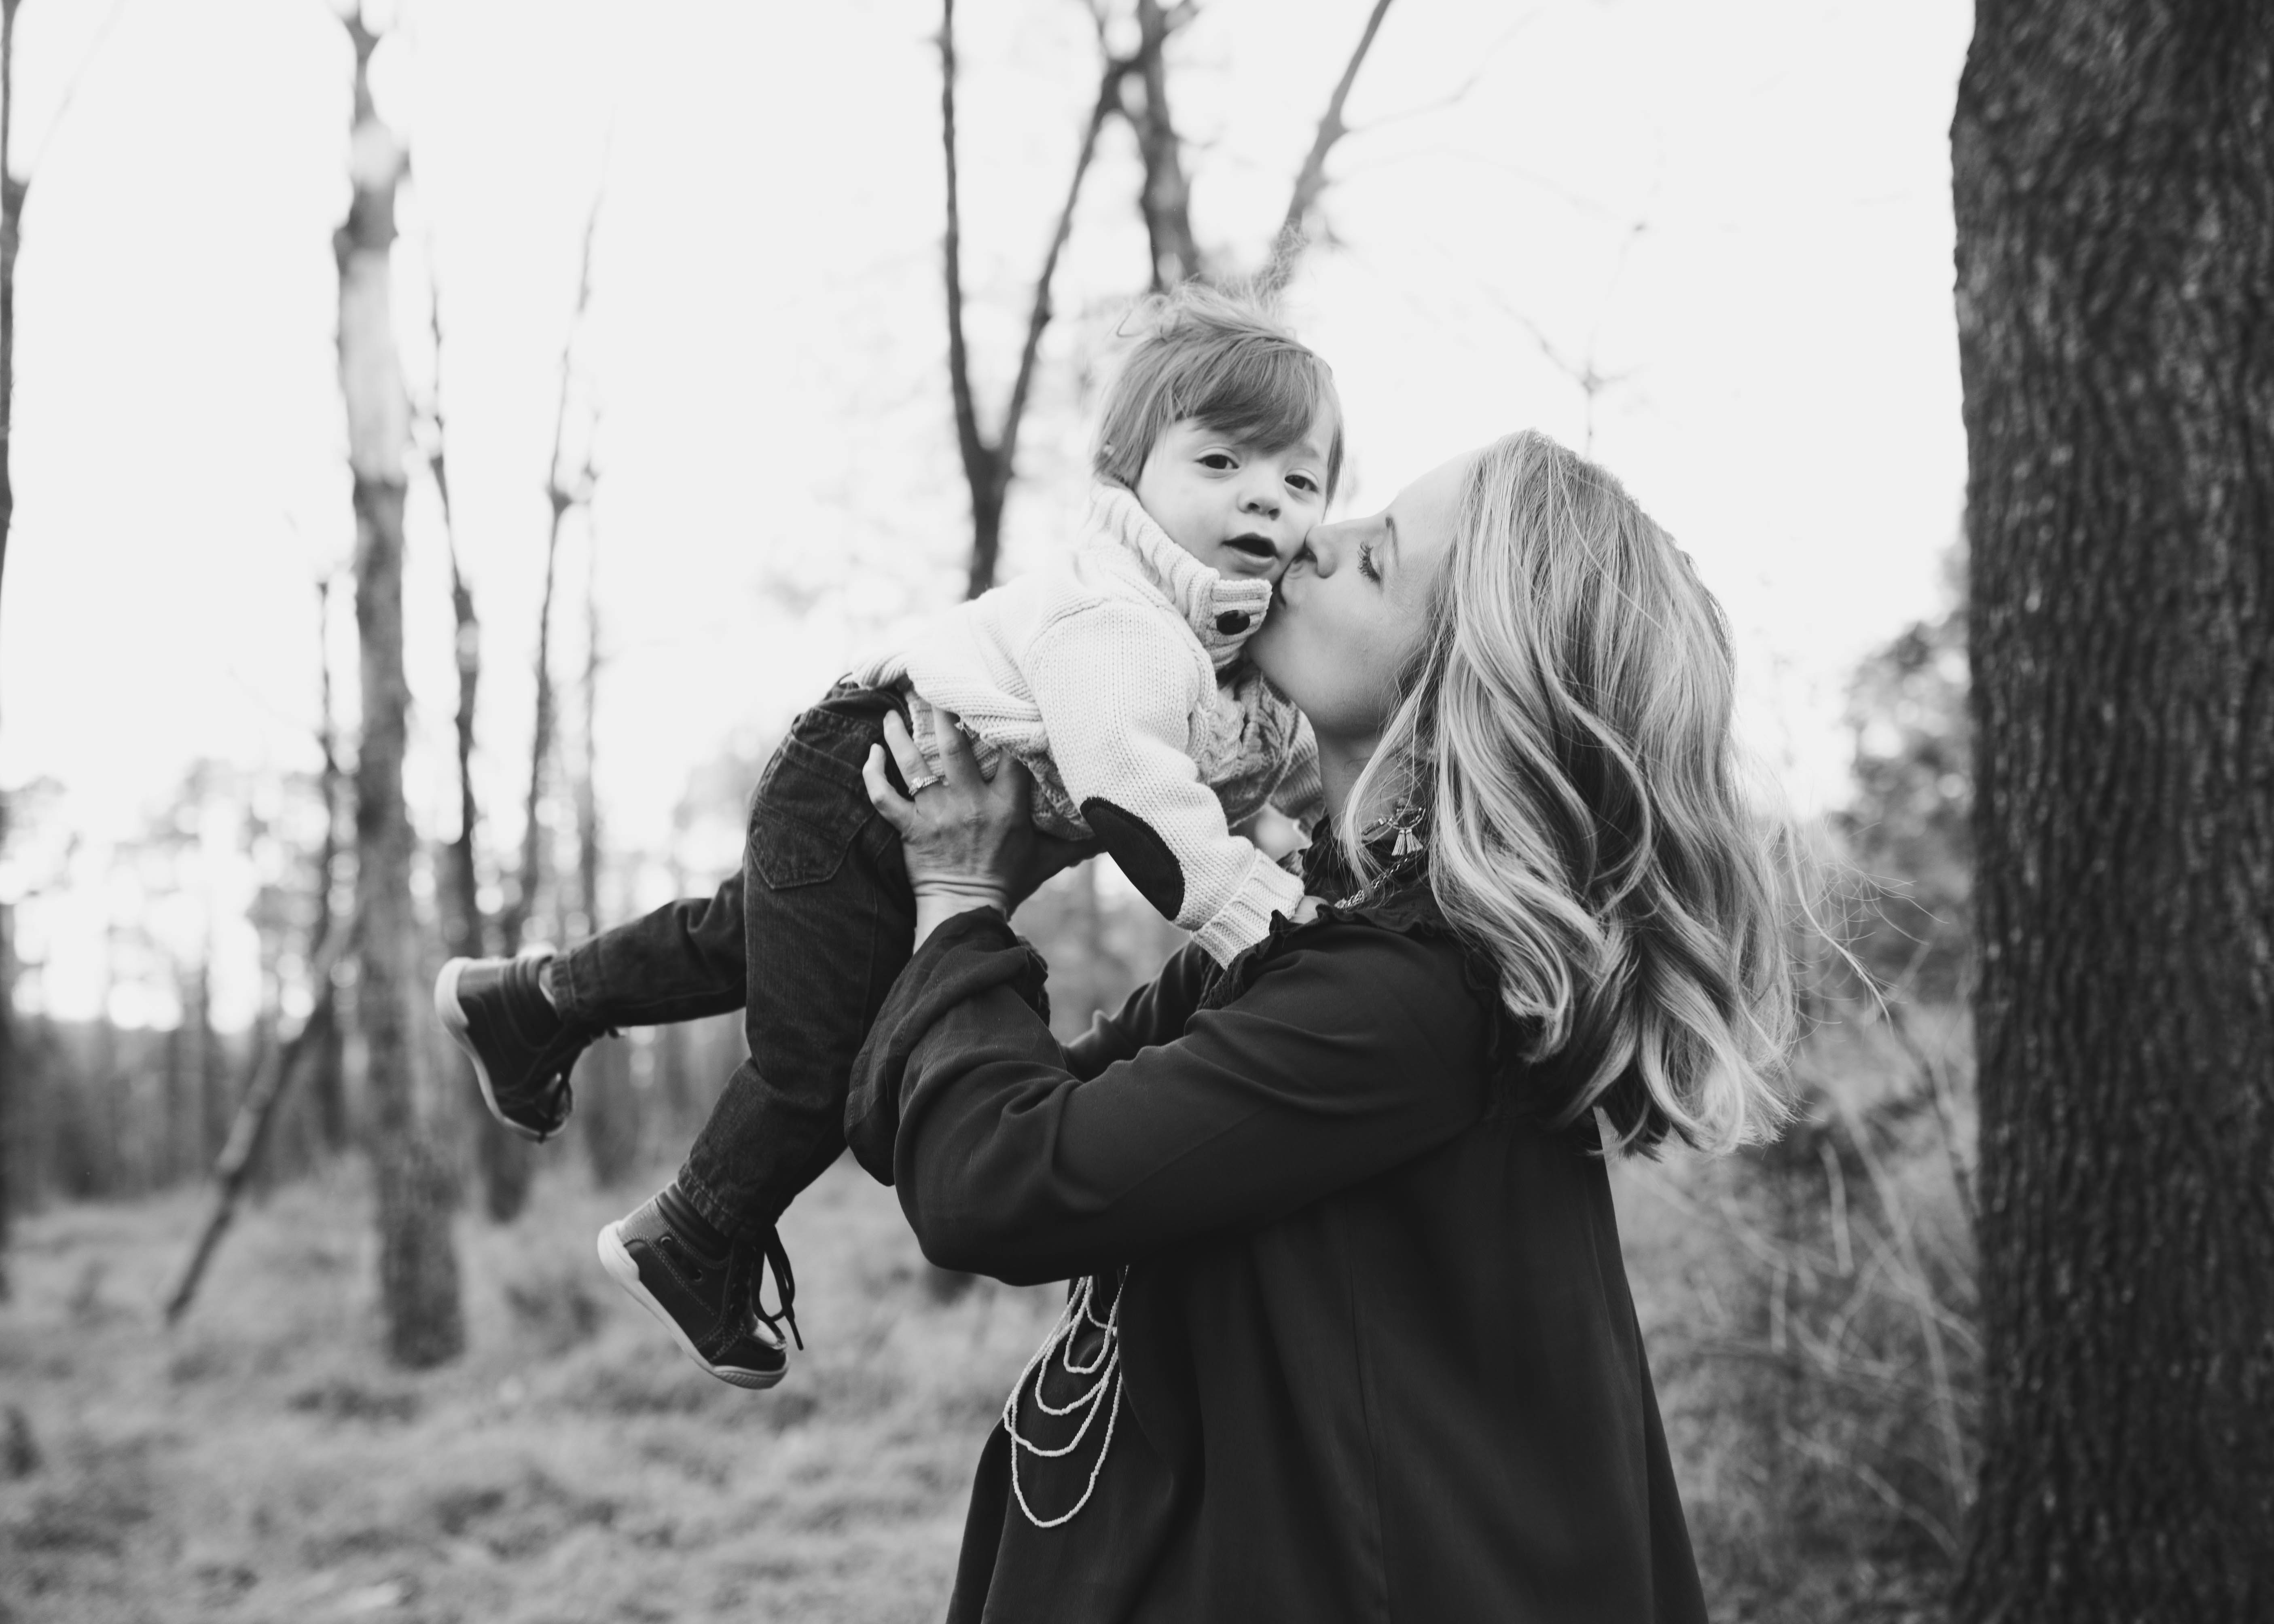 Free Stock Photos Of Mother  Pexels-6315